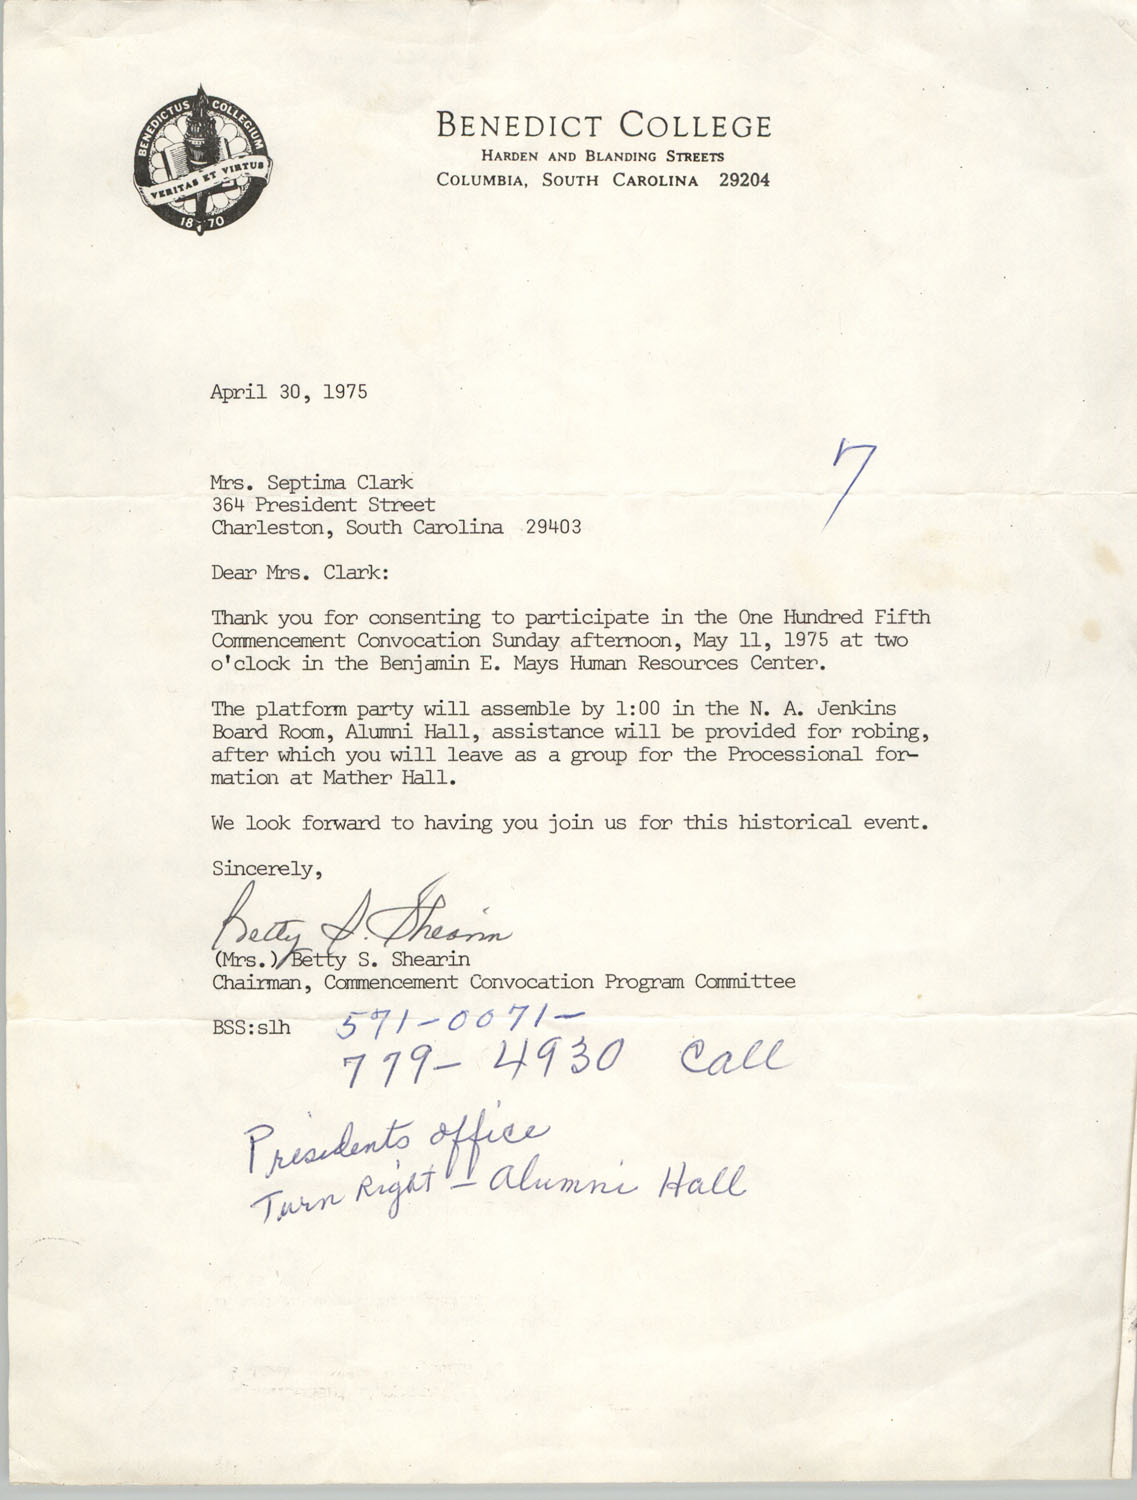 Letter from Betty S. Shearin to Septima P. Clark, April 30, 1975